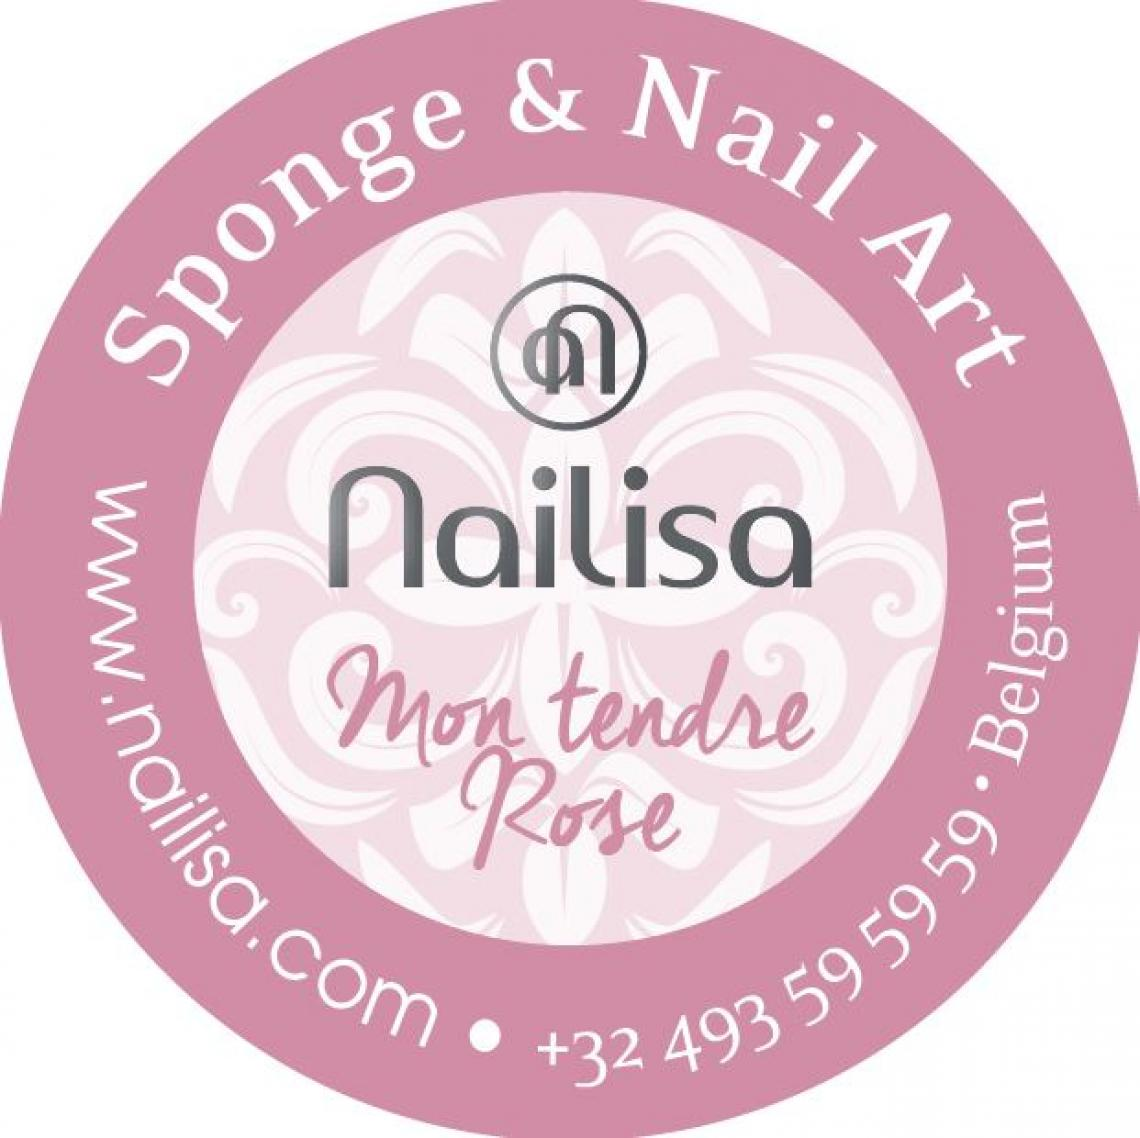 Painting Gel Sponge & Nail Art - Mon Tendre Rose 5ml - photo 8